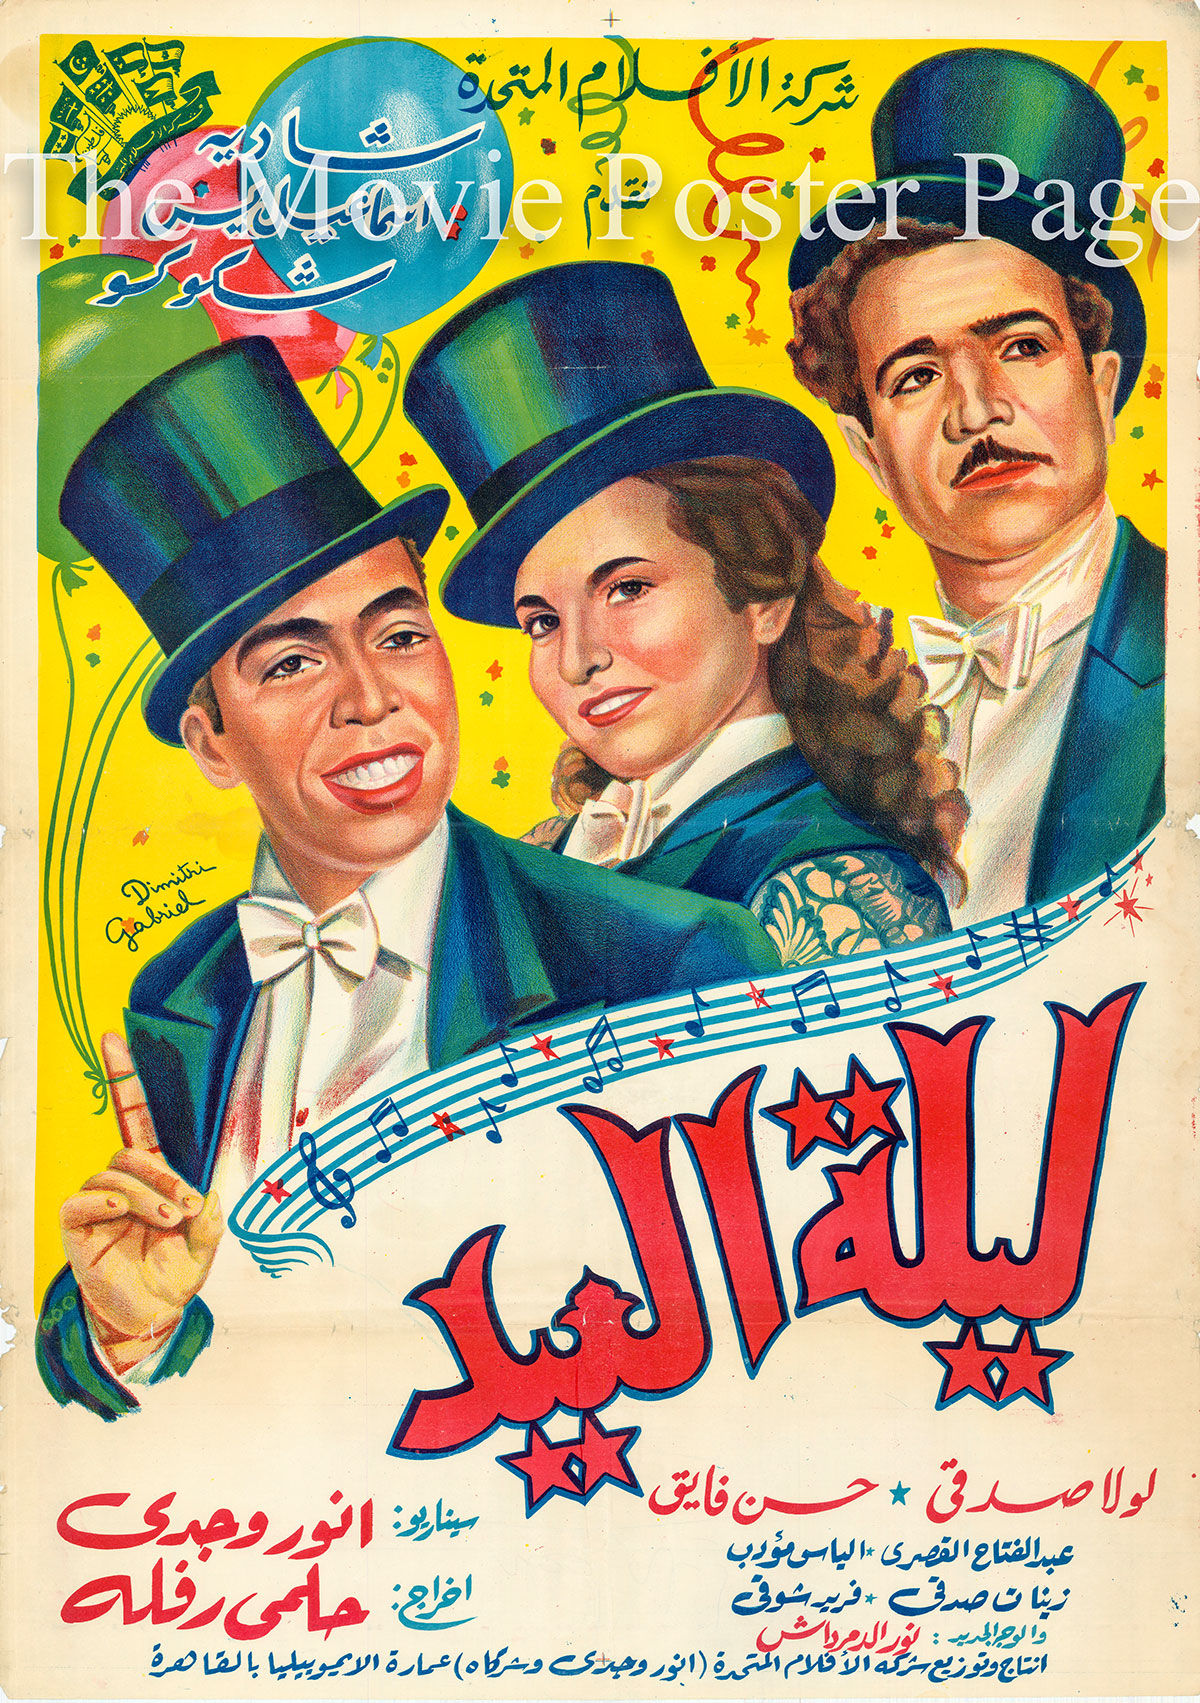 Pictured is an Egyptian promotional poster for the 1949 Helmy Rafla film Festival Night starring Shadia.